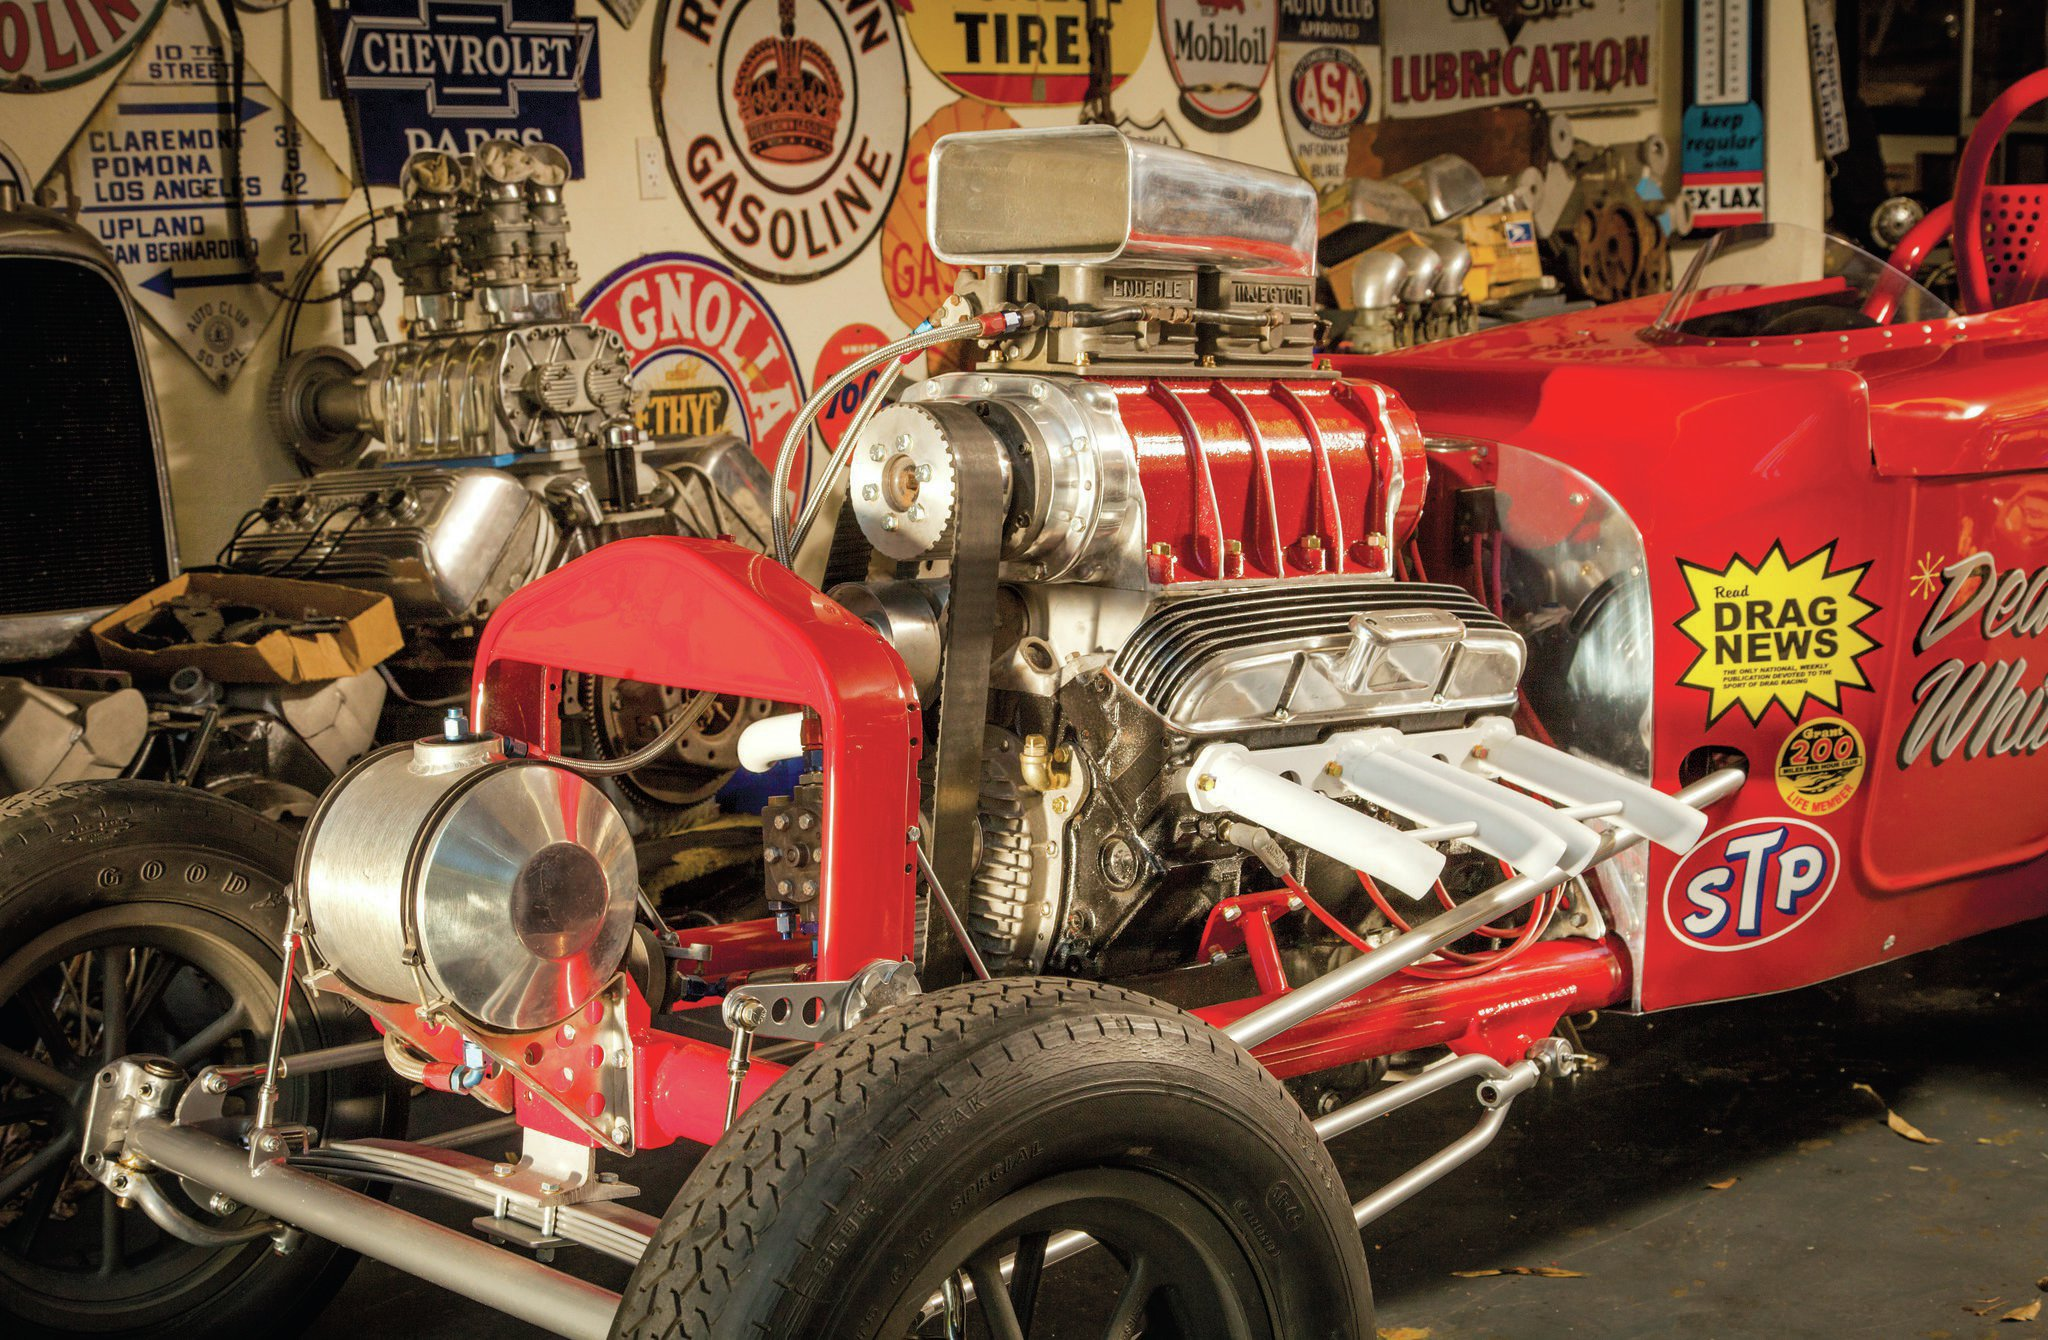 The engine is a combination of original pieces—the block, heads, blower manifold, injectors—and donated parts. Jeff Arnett brought one of his father's original blowers to the build. Rick White fabbed headers to match what his father ran in the day.